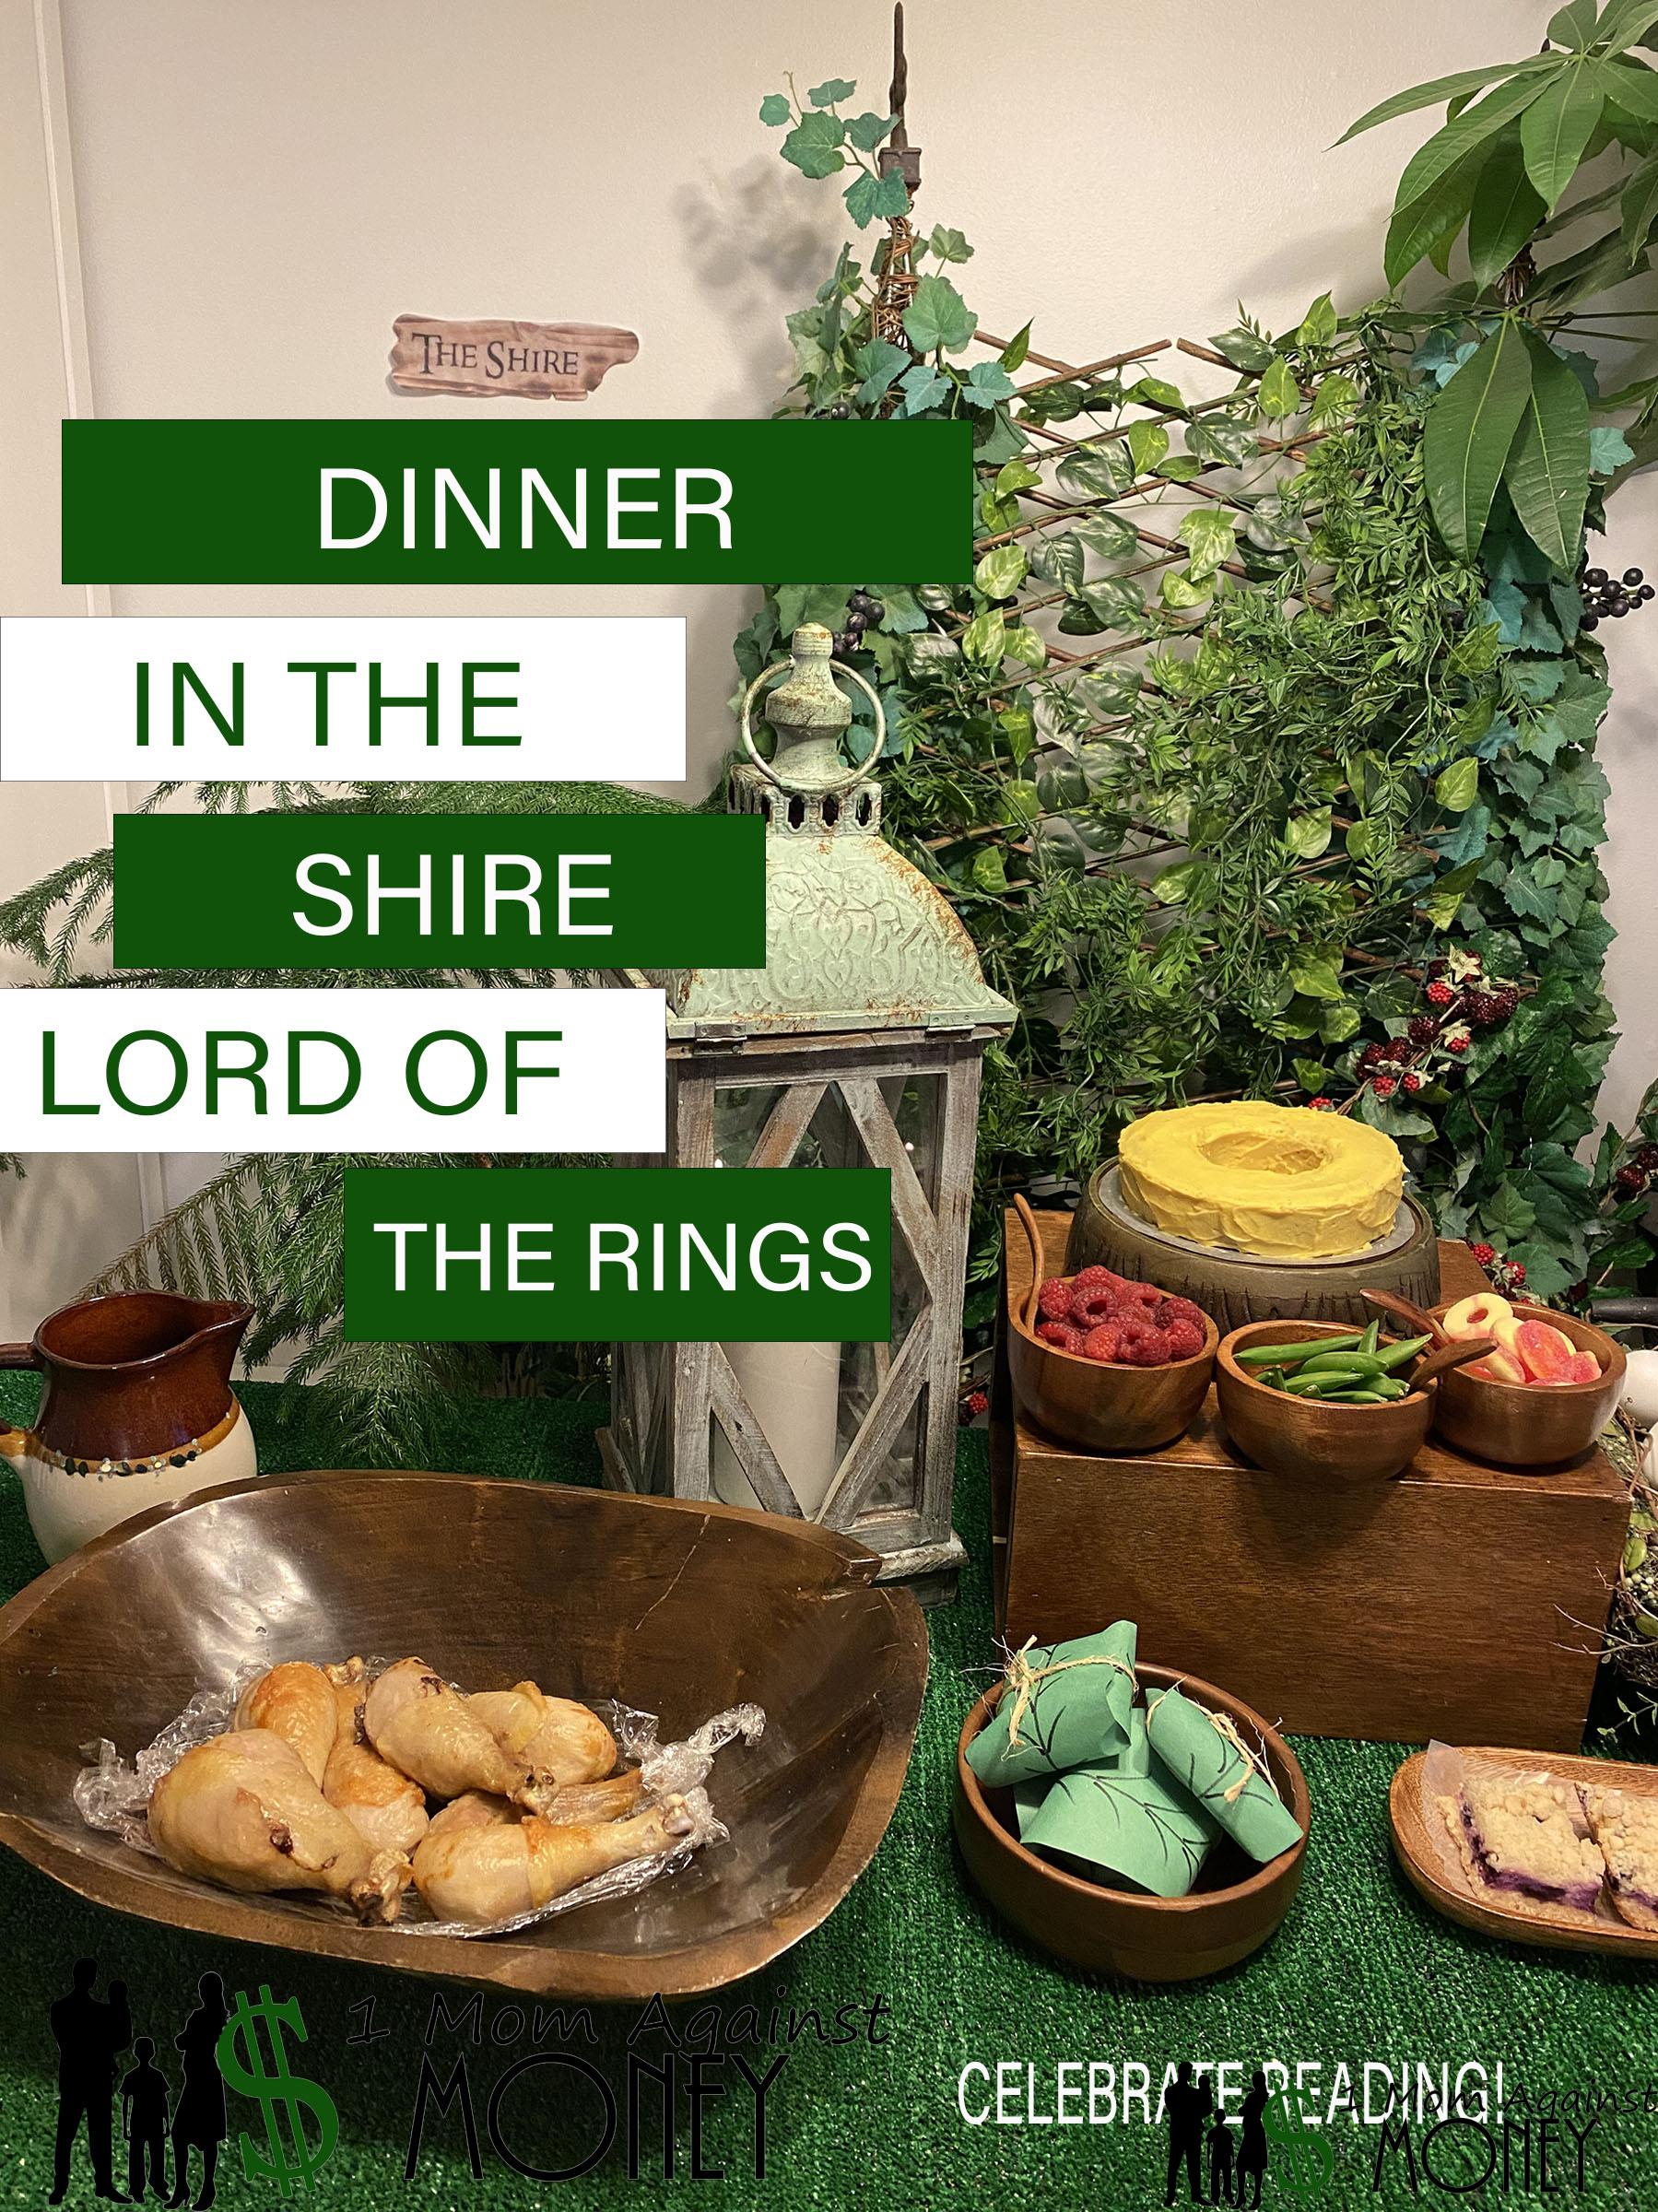 Read more about the article Lord Of The Rings Dinner in The Shire